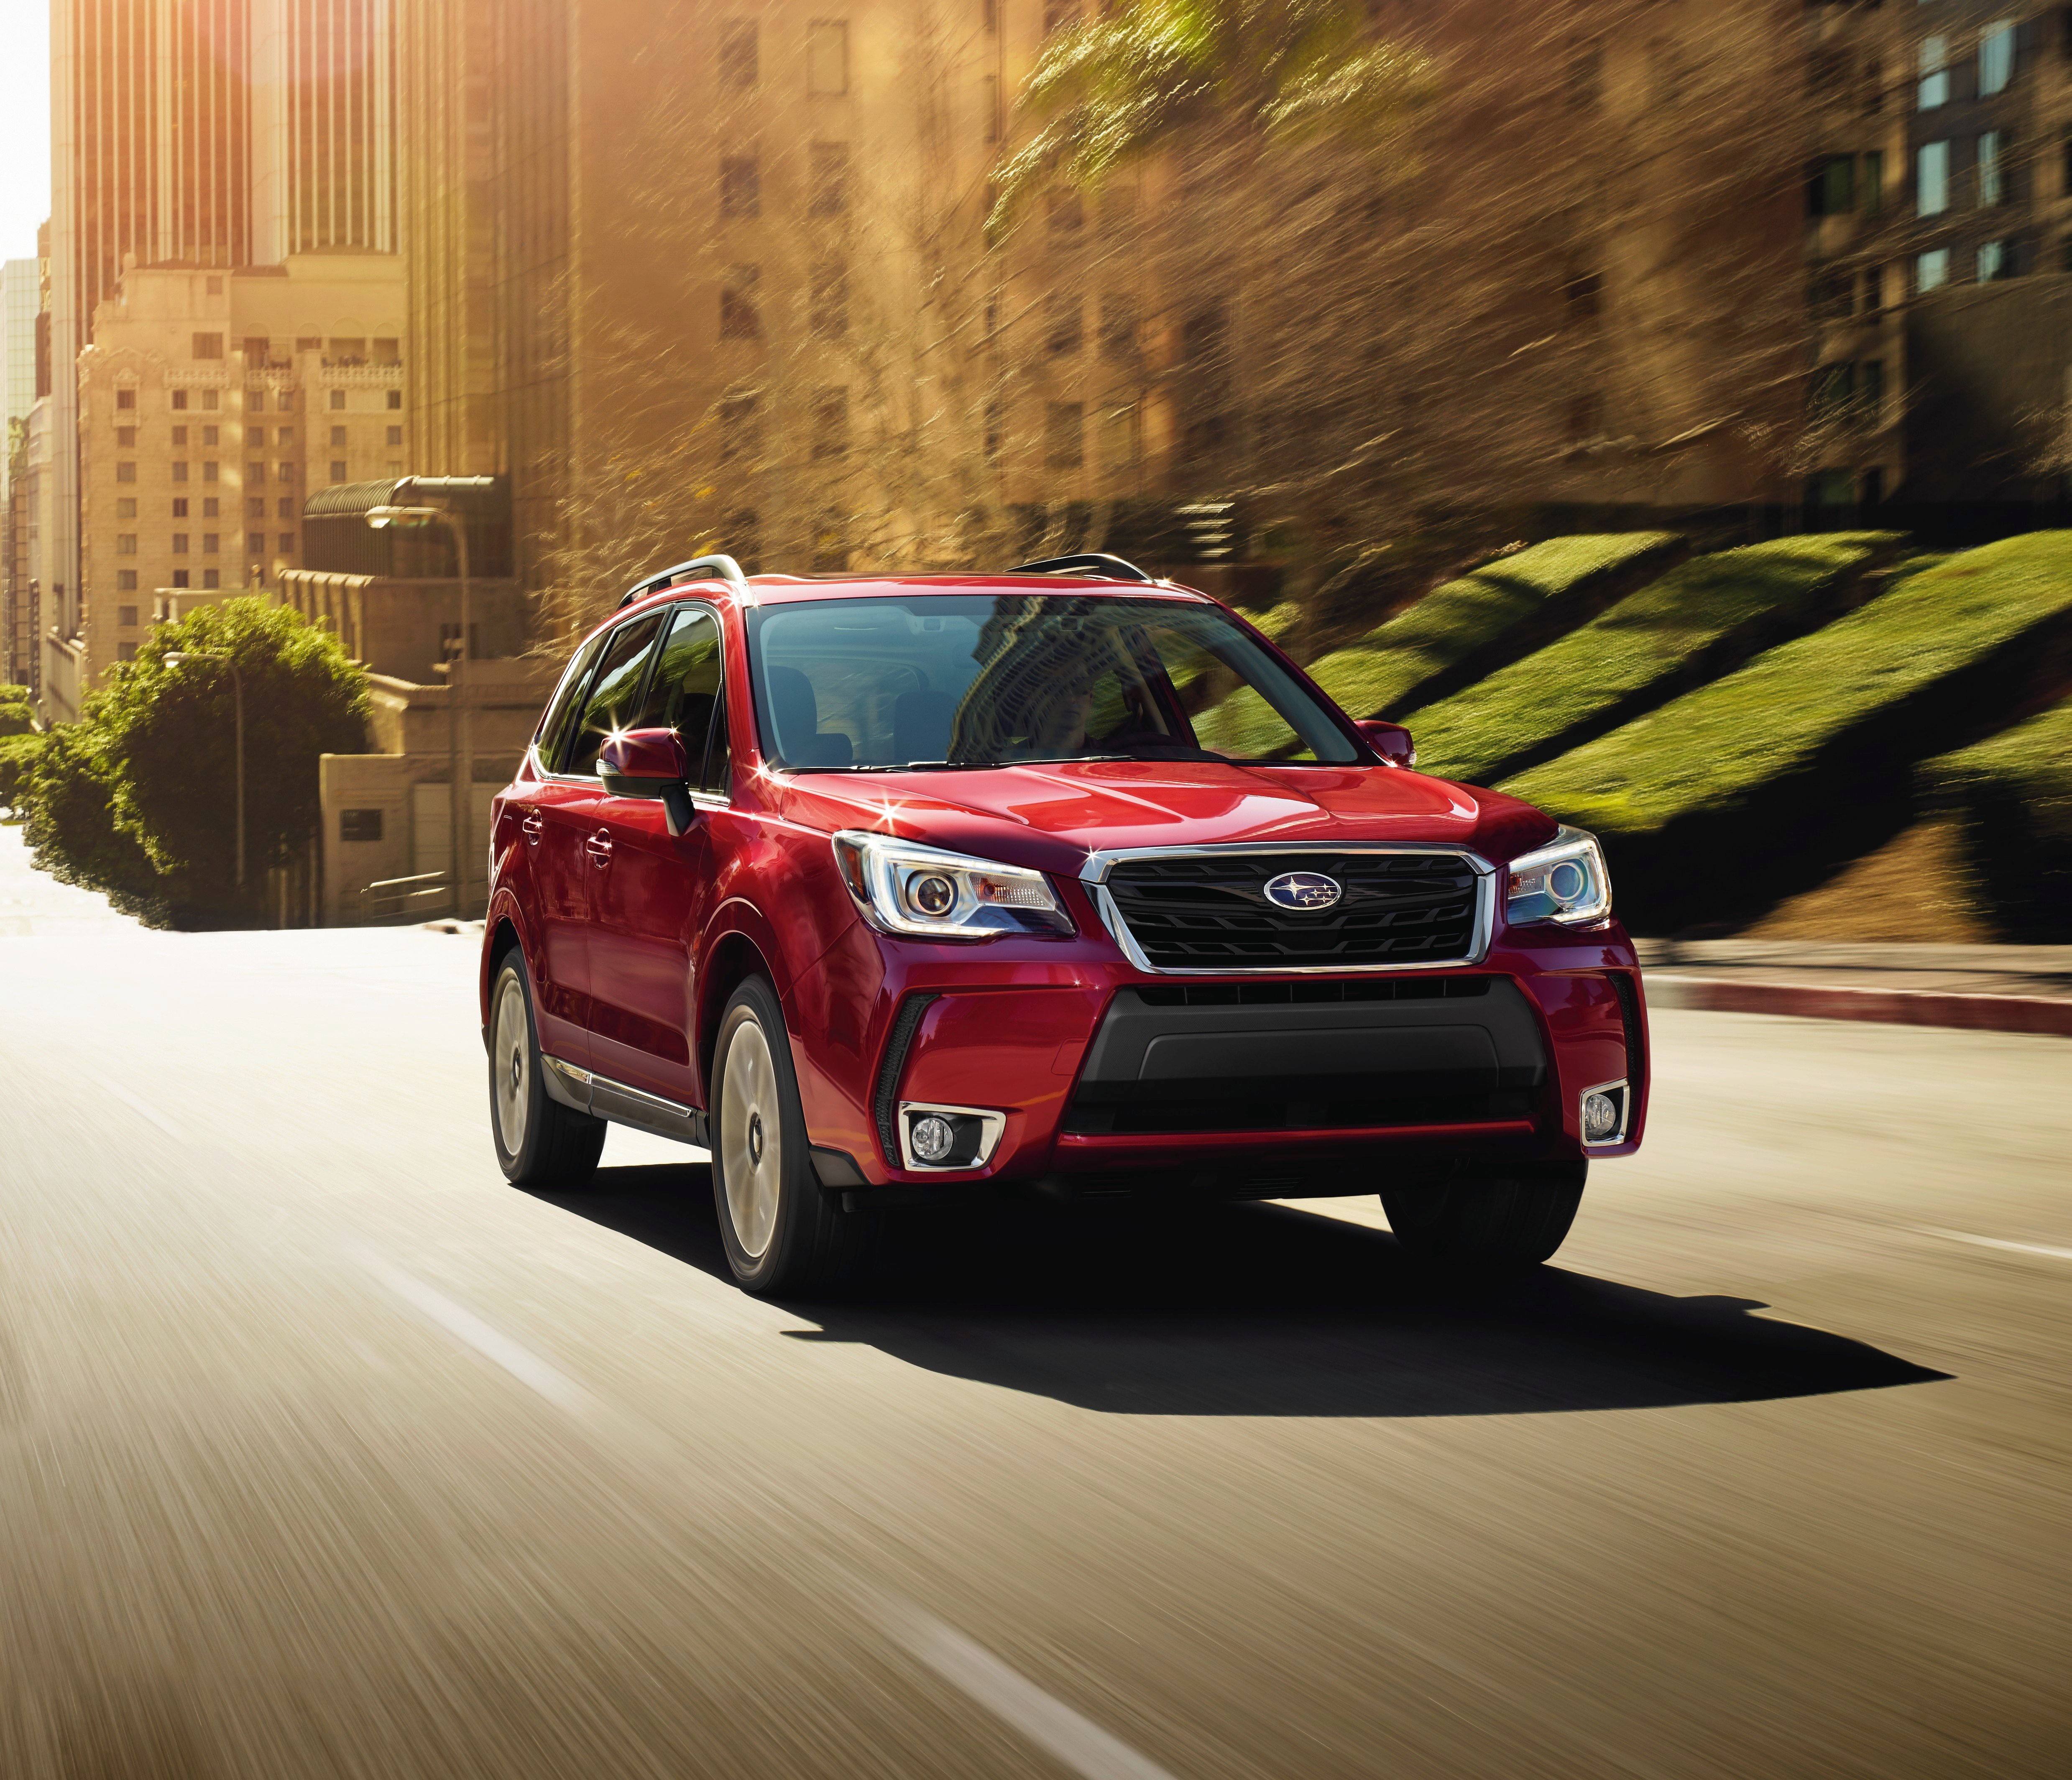 2019 Subaru Forester Transmission: 2018 Subaru Forester XT Review